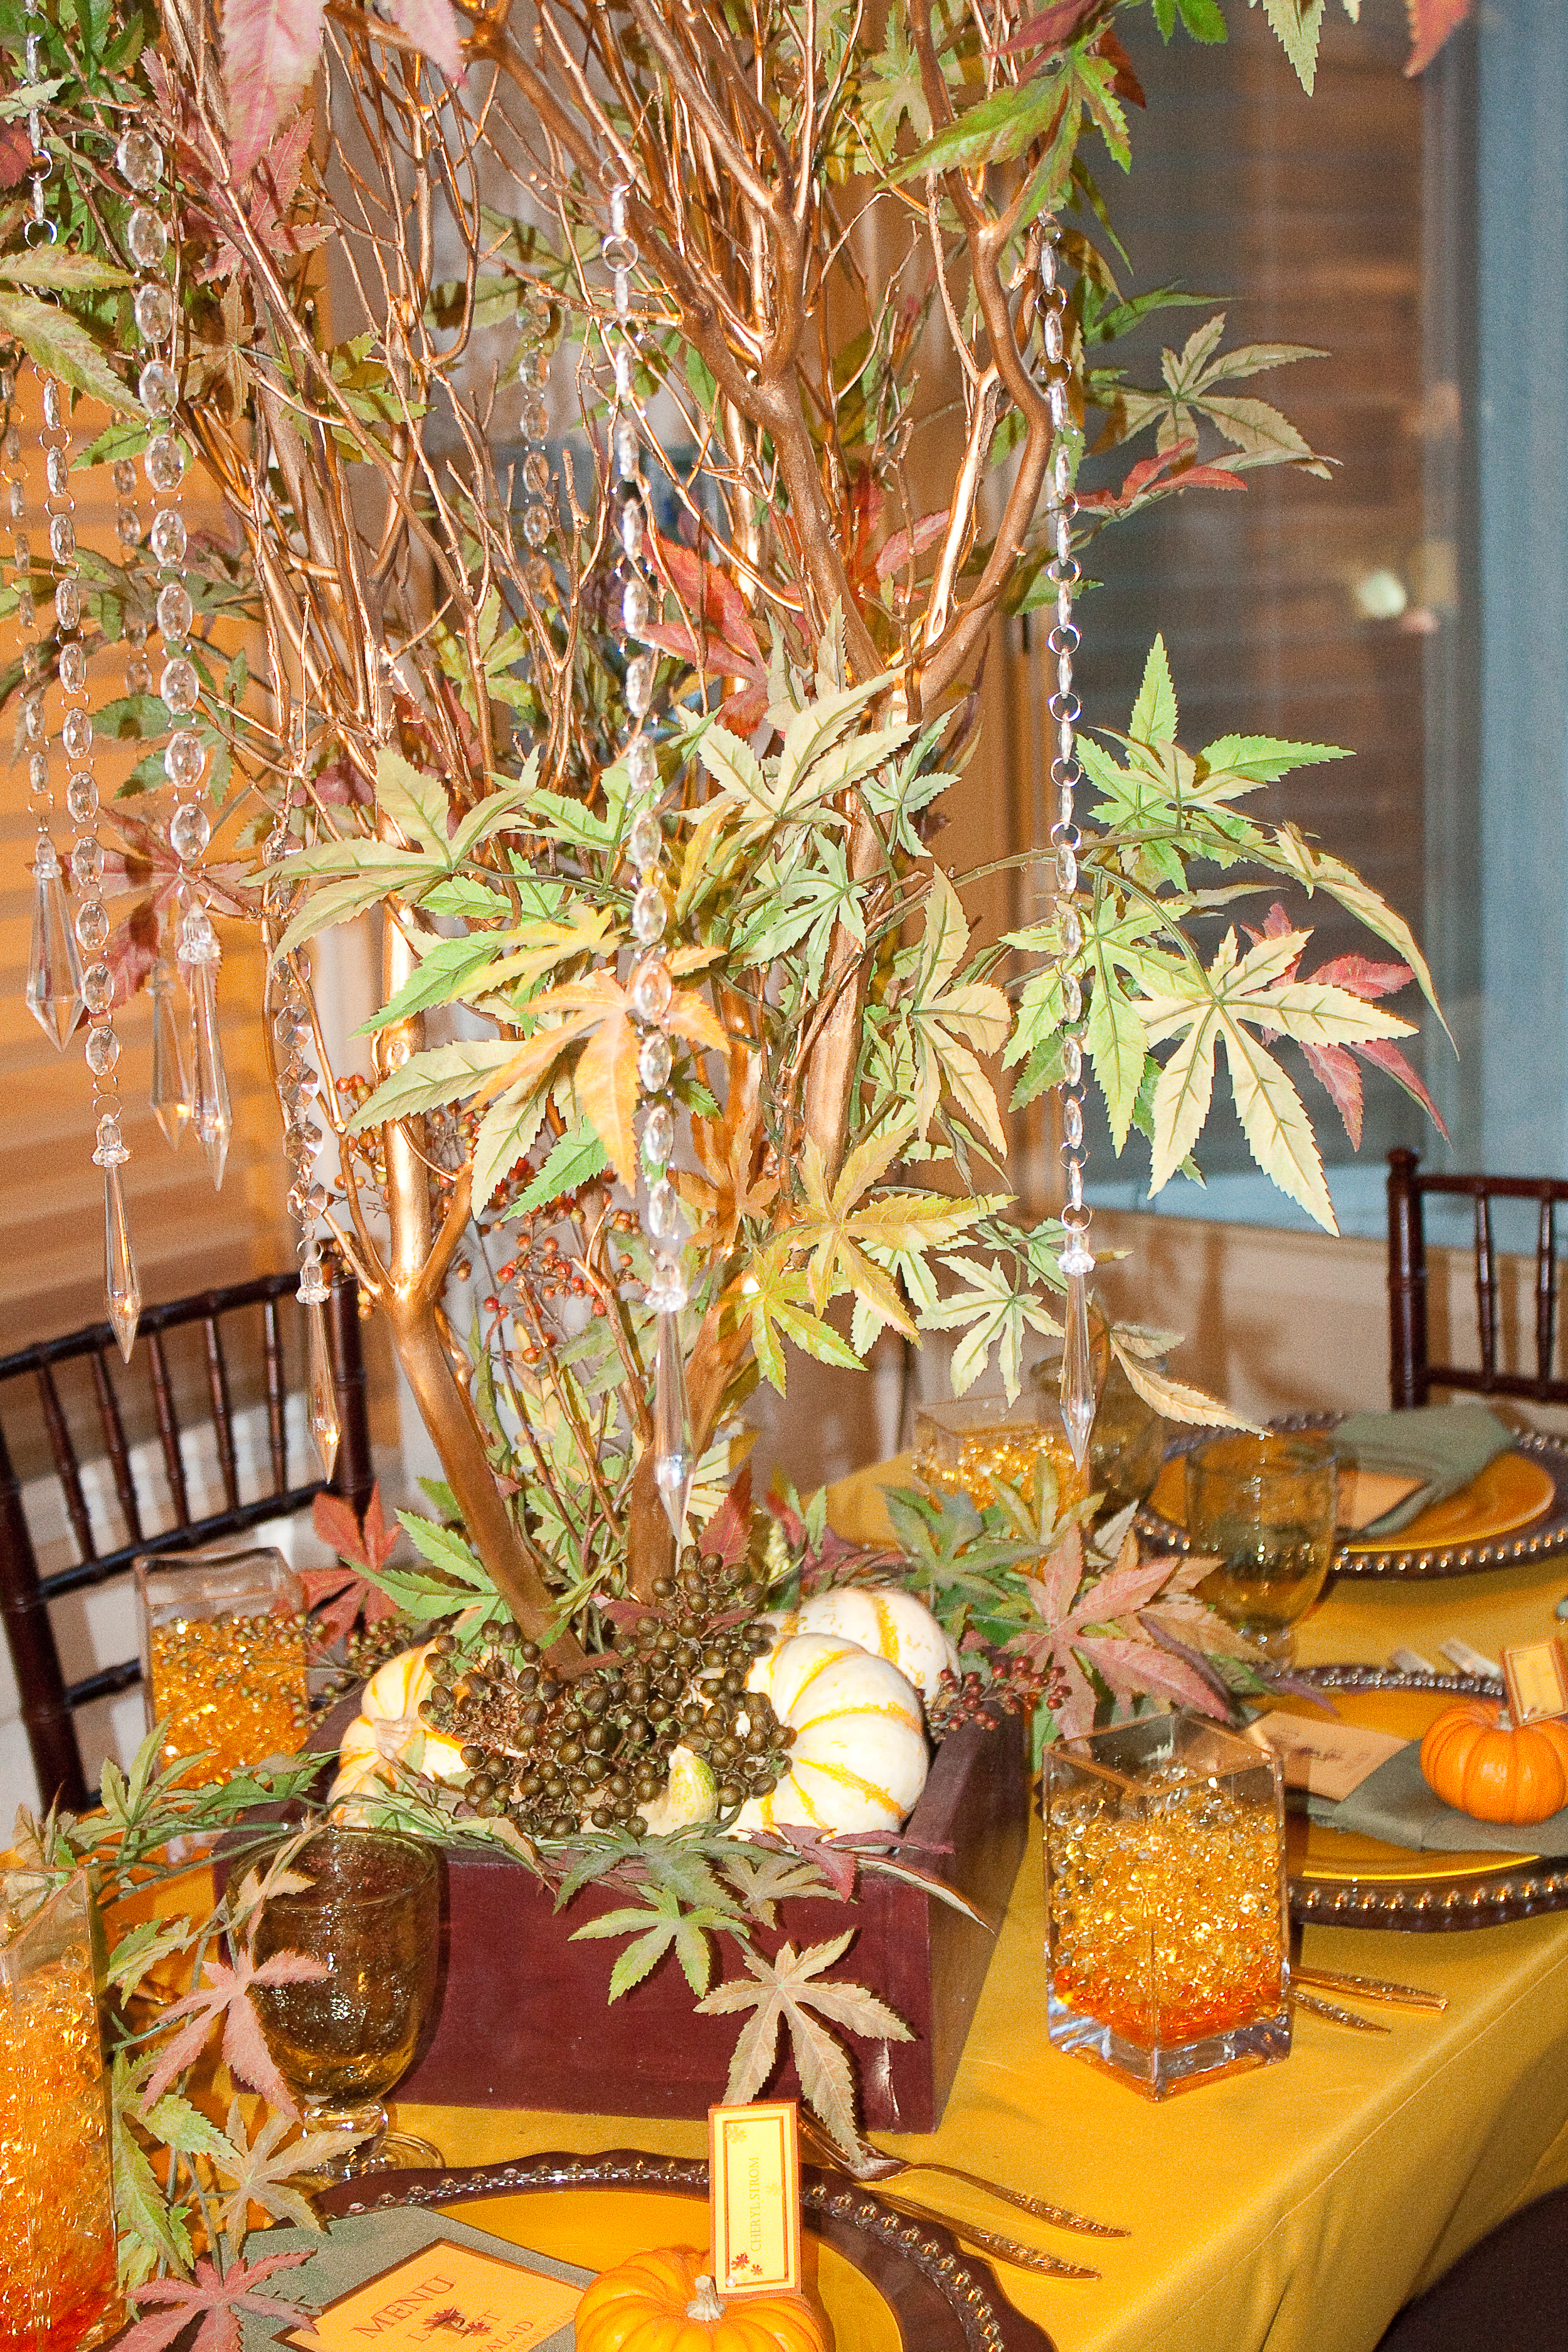 Reception, Flowers & Decor, white, yellow, orange, red, green, brown, gold, Centerpieces, Fall, Centerpiece, Tree, Manzanita, Wishing, Autumn, Crystals